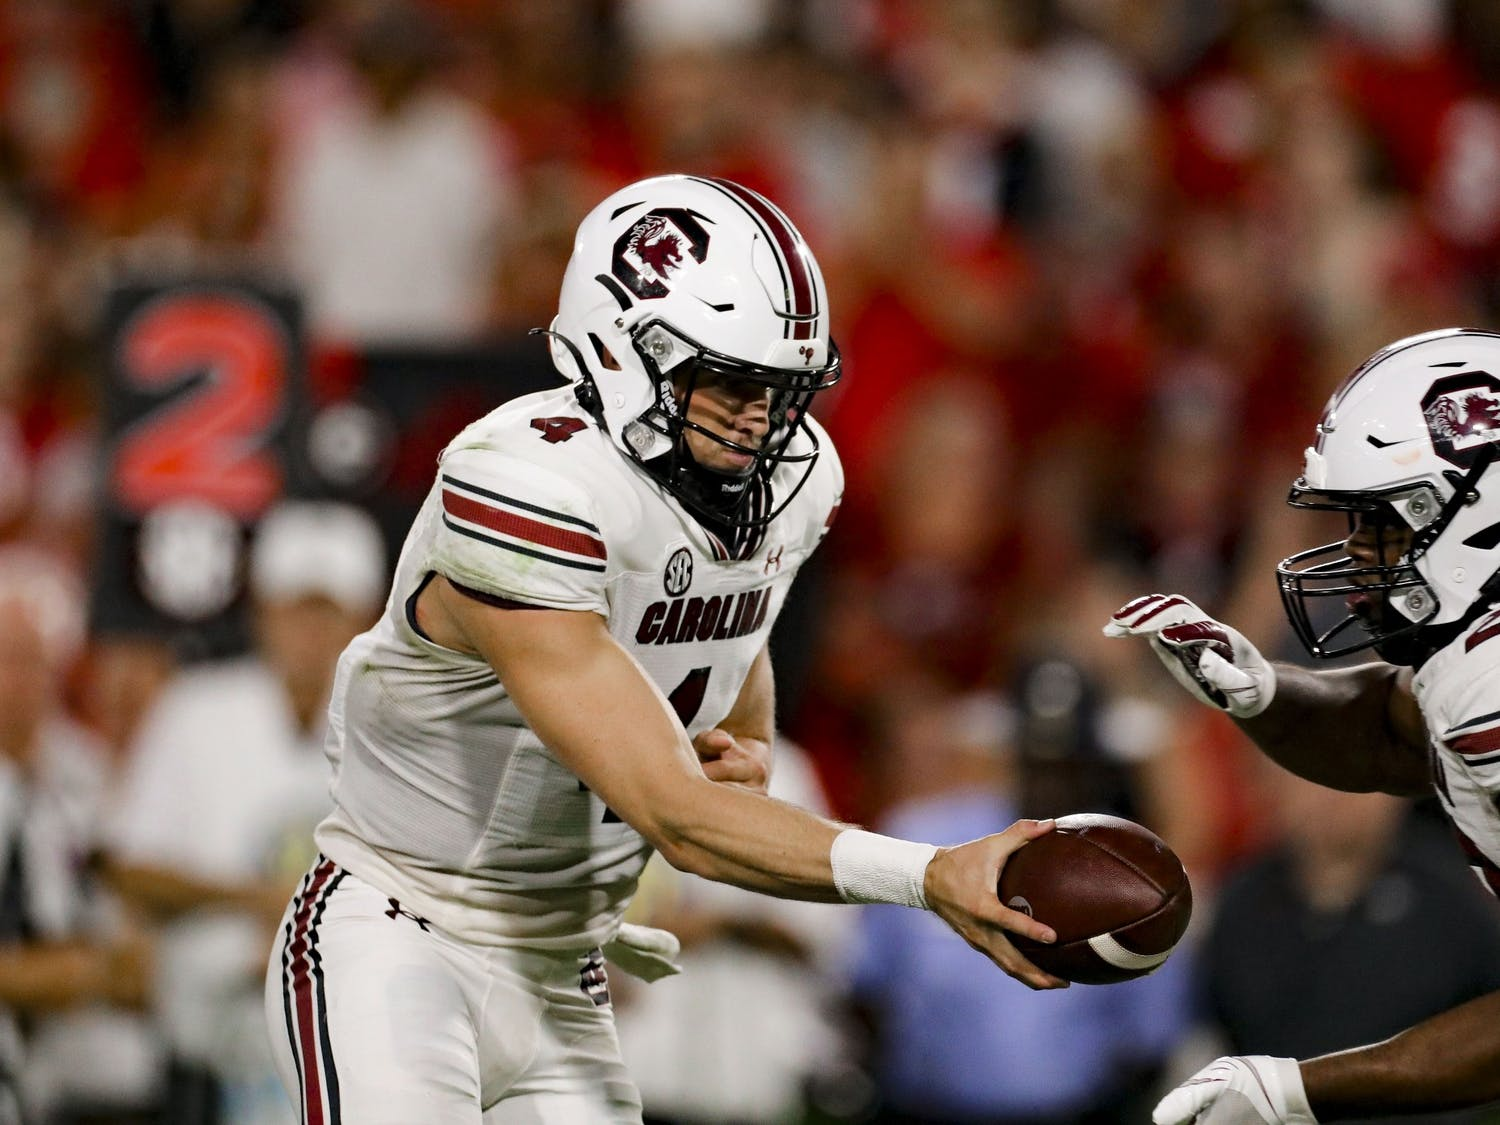 Sophomore quarterback Luke Doty hands the ball off to running back Kevin Harris in South Carolina's game against Georgia on Sept. 18, 2021.